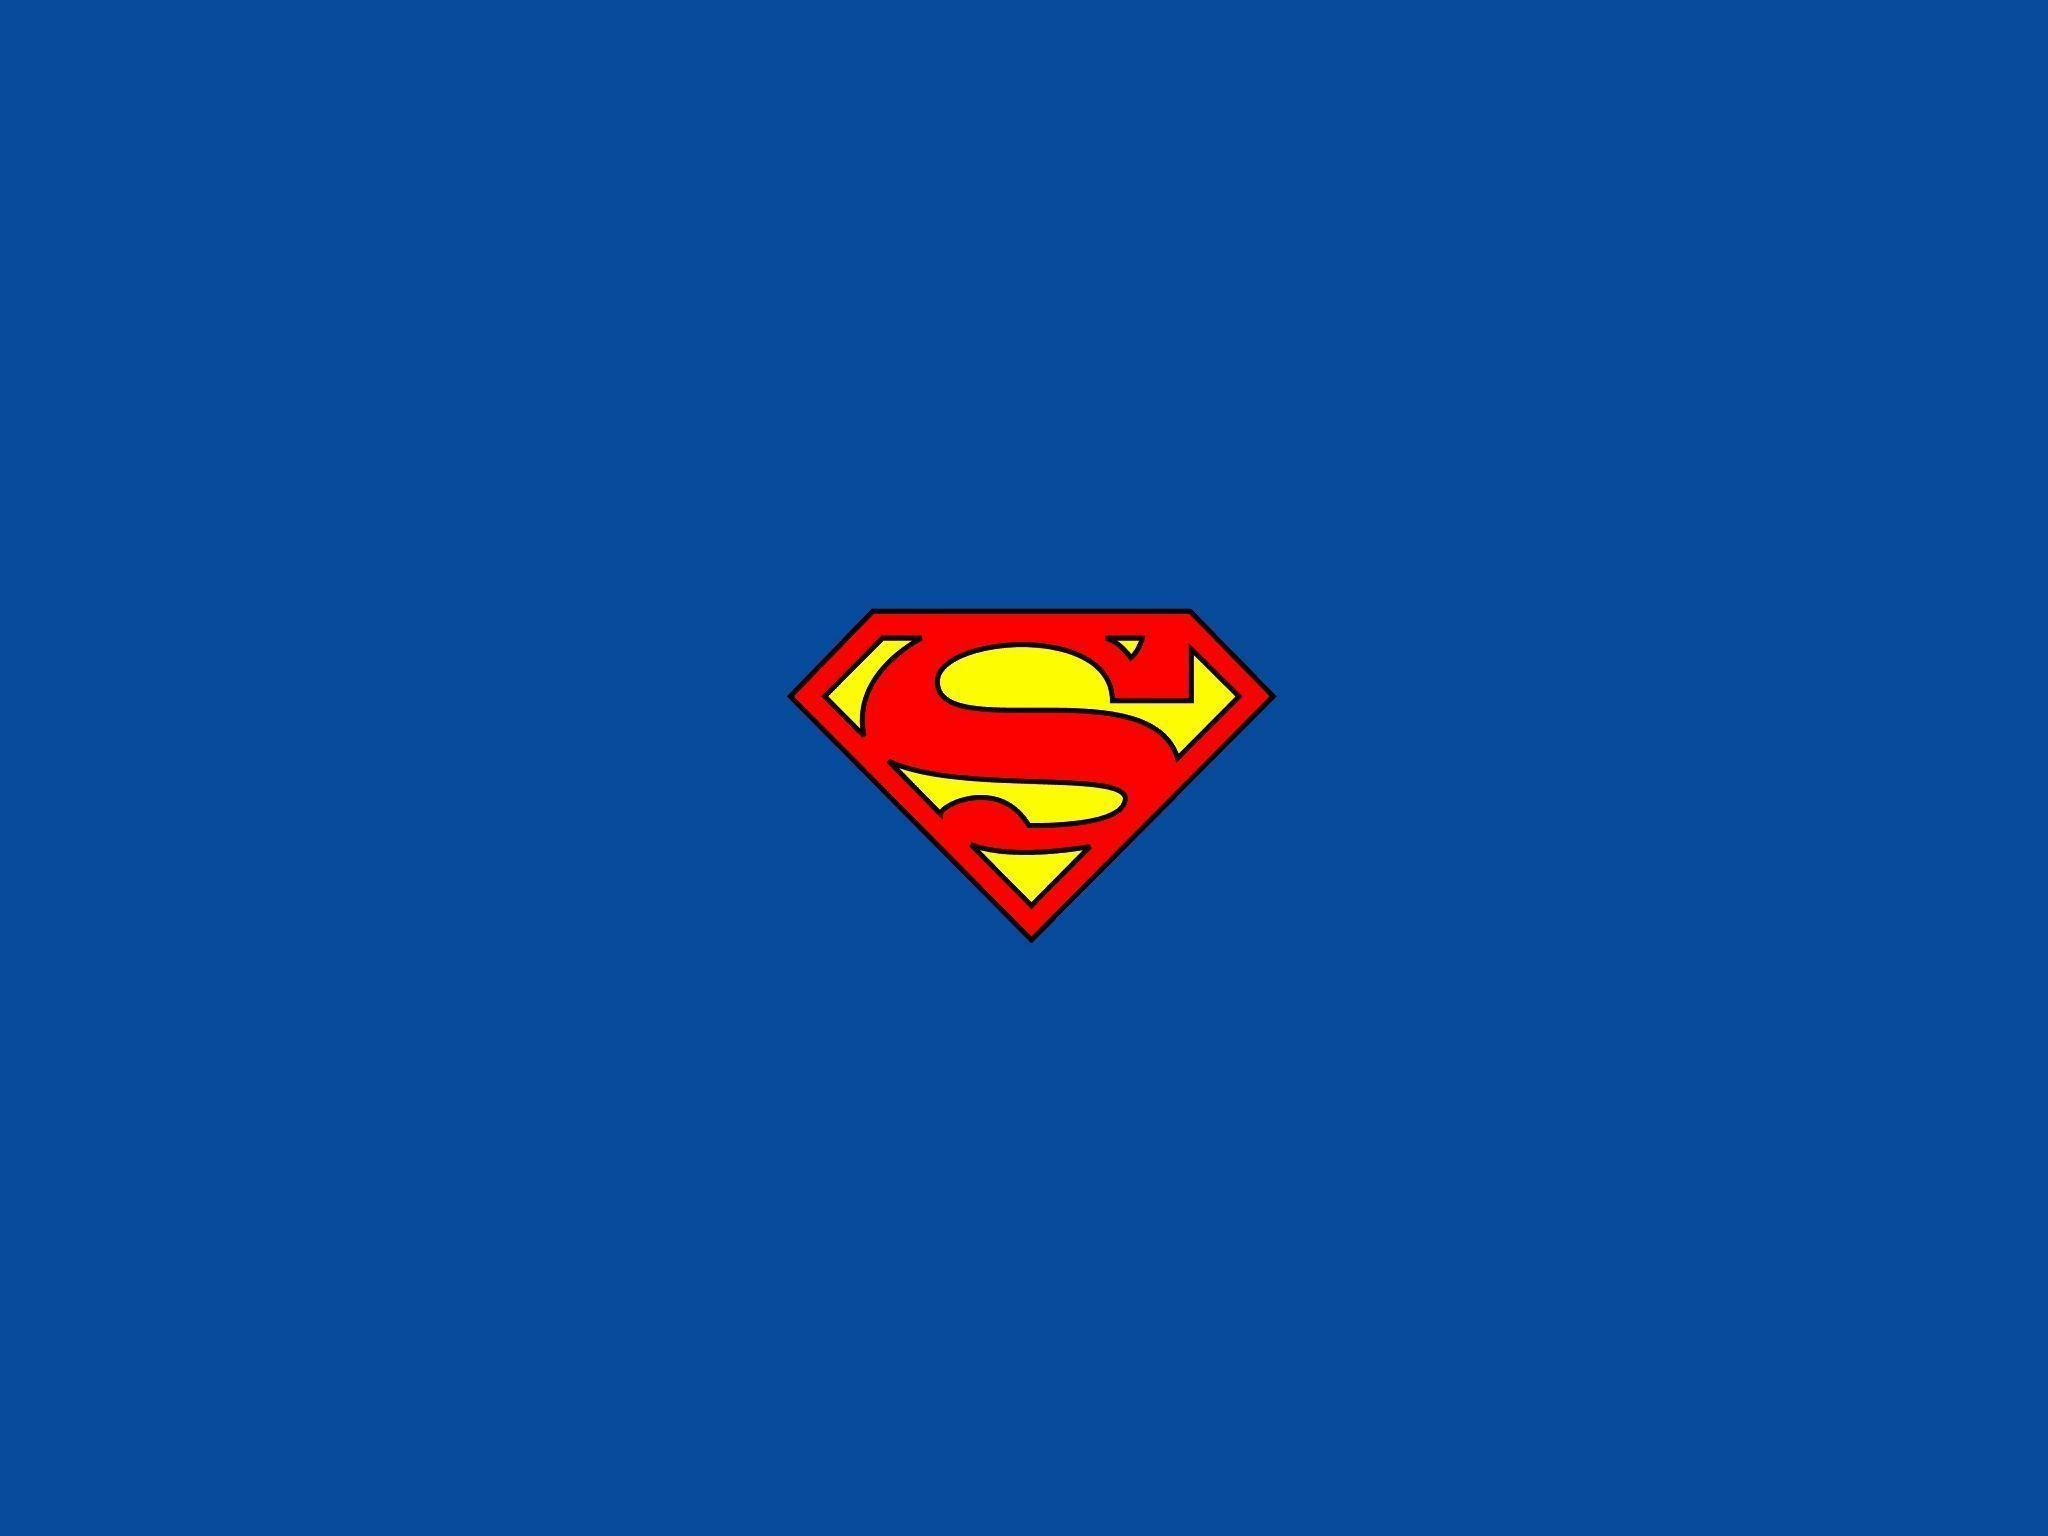 Wallpapers Of Superman Logo - Wallpaper Cave